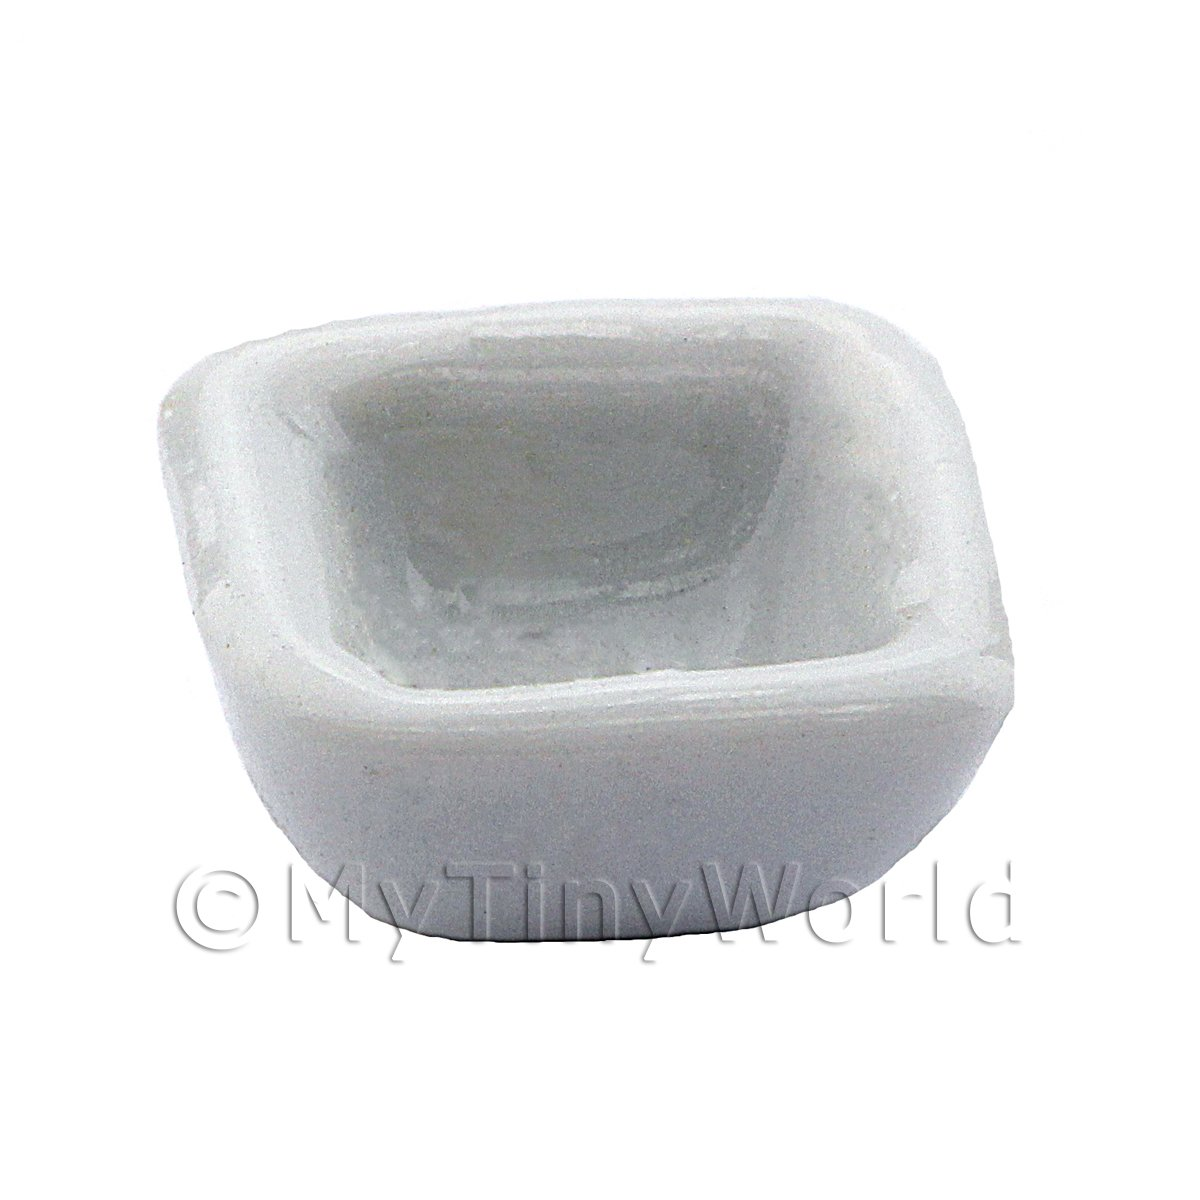 13mm Dolls House Miniature White Glazed Ceramic Square Bowl